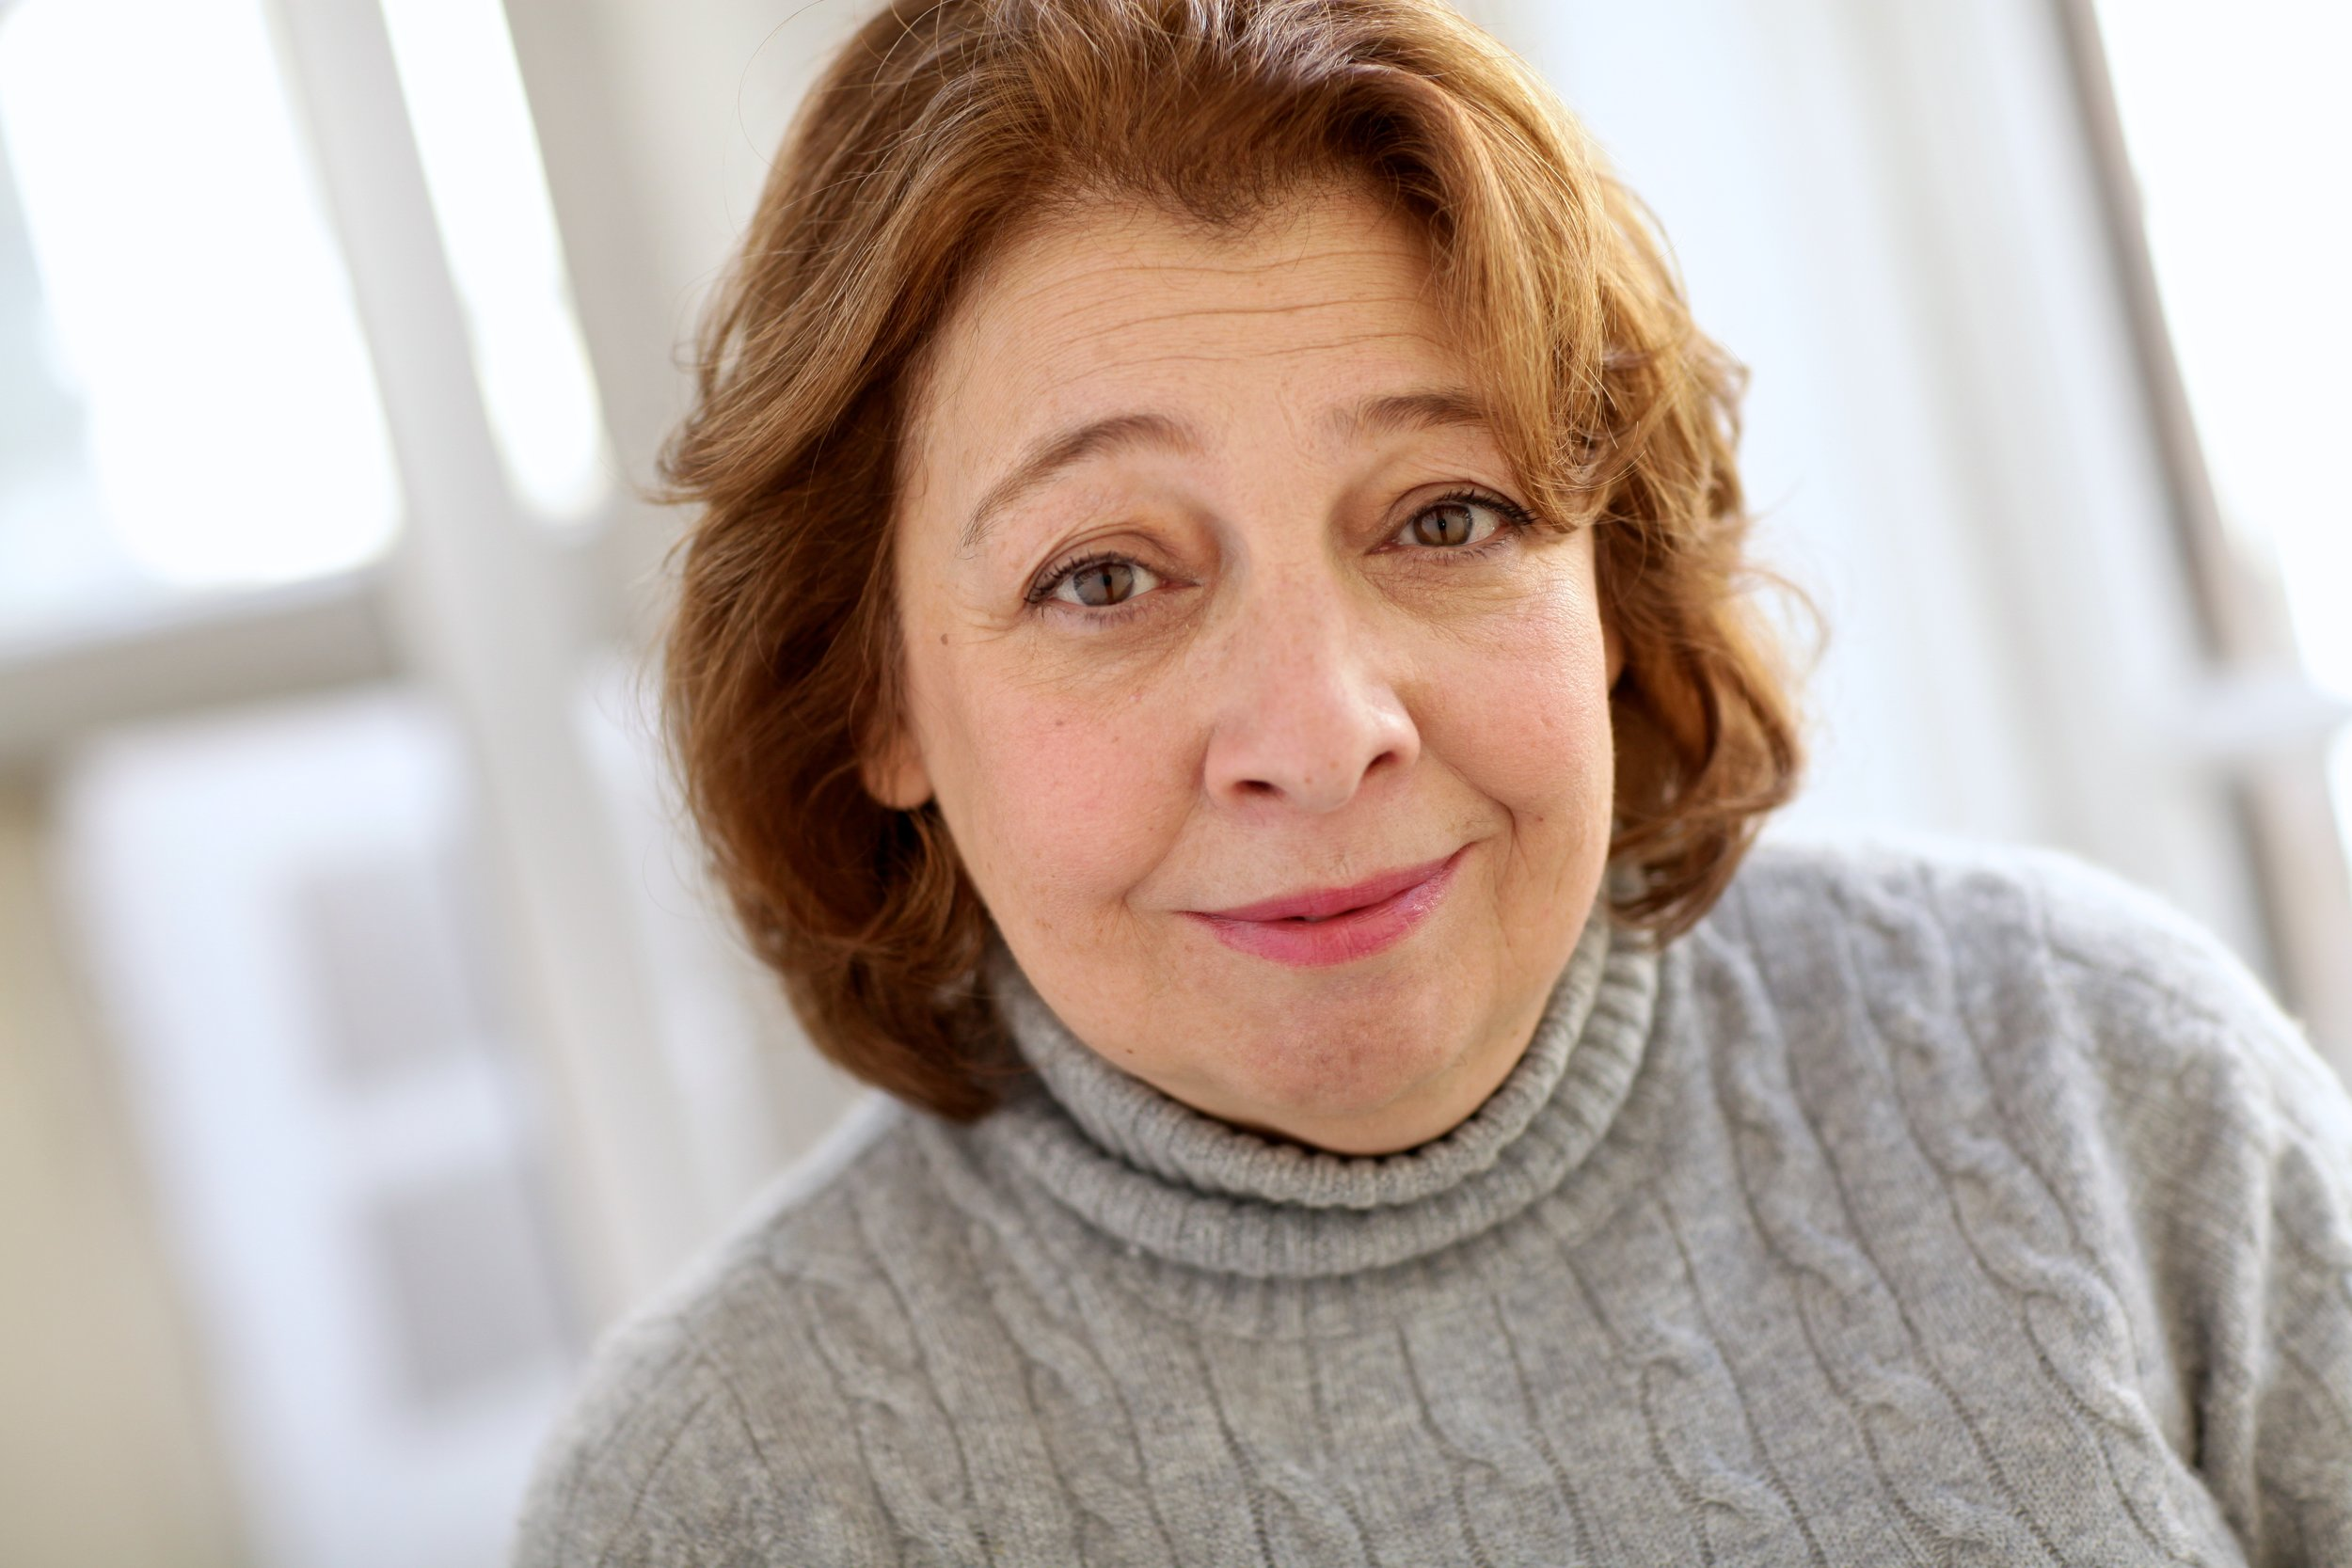 Judy Del Guidice  Appointment Rate: $125.00/ hr  About: Judy Del Giudice is an actress and writer, known for  Orange Is the New Black (2013), Boardwalk Empire (2010) and  The Sopranos (1999).